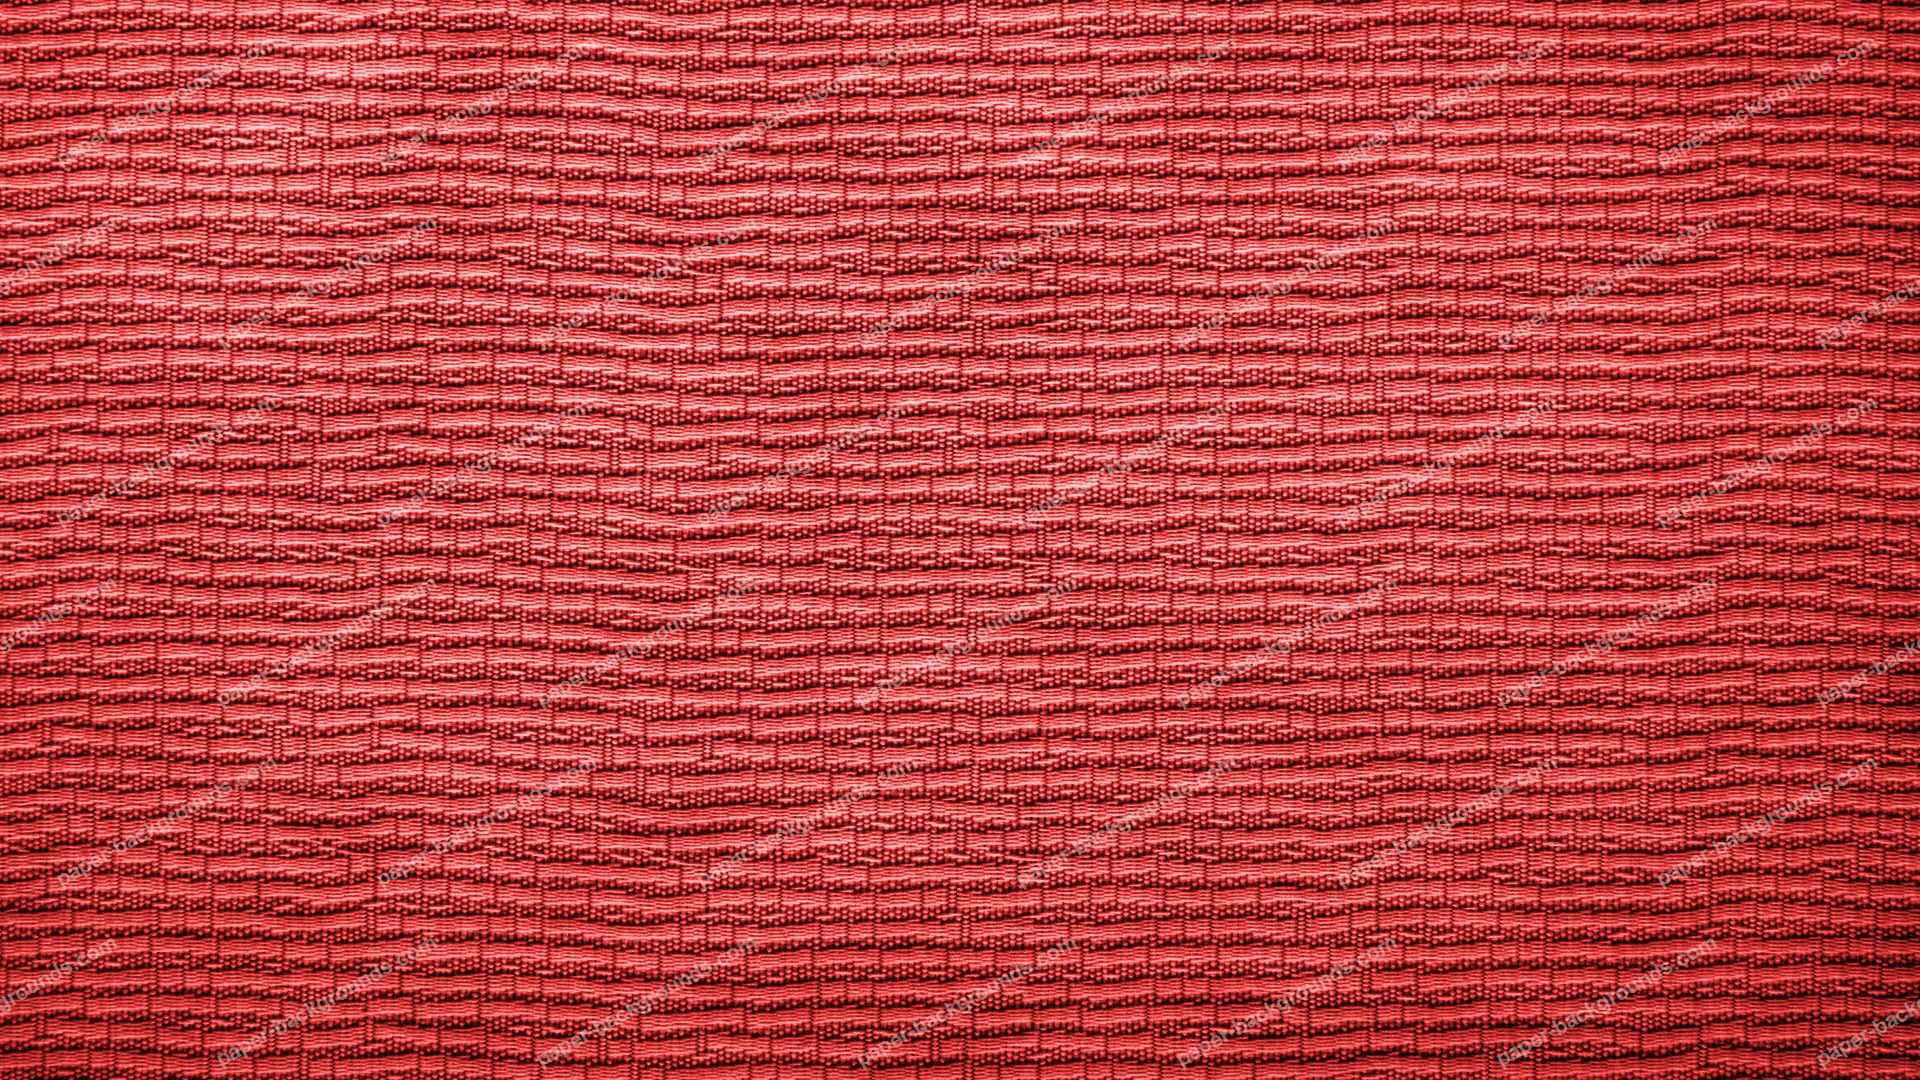 Red Textured Canvas HD 1920 x 1080p